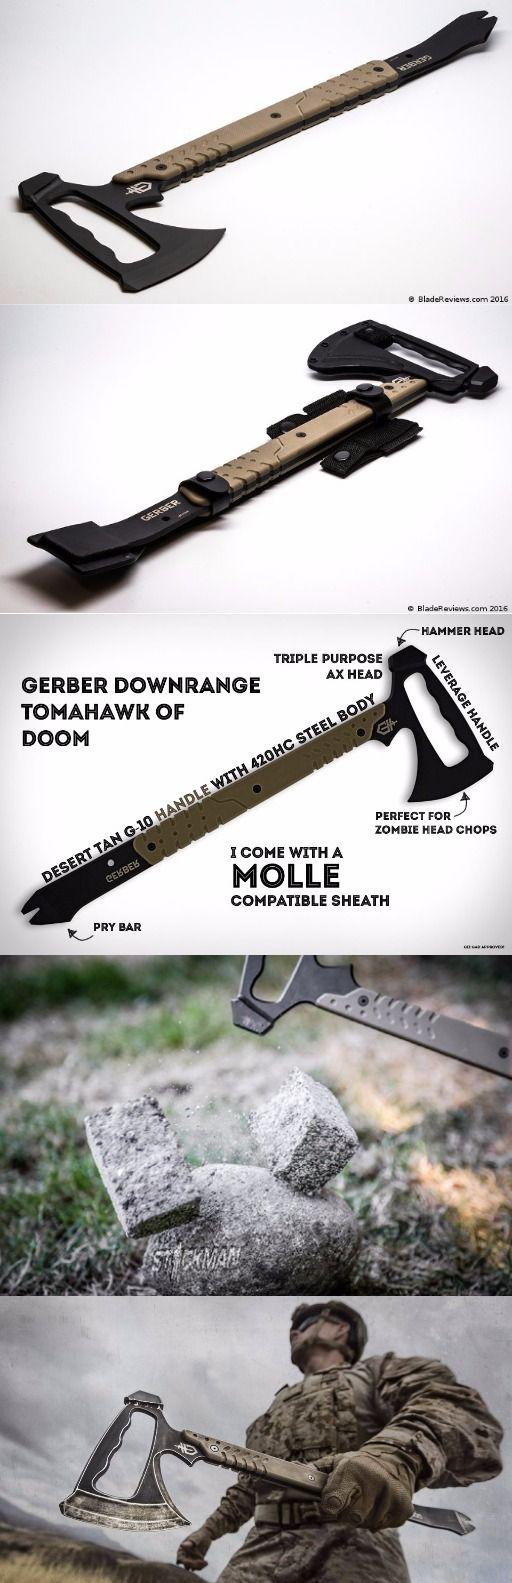 Gerber Downrange Tomahawk Tactical Multi Functional Axe Hammer Pry Bar @aegisgears